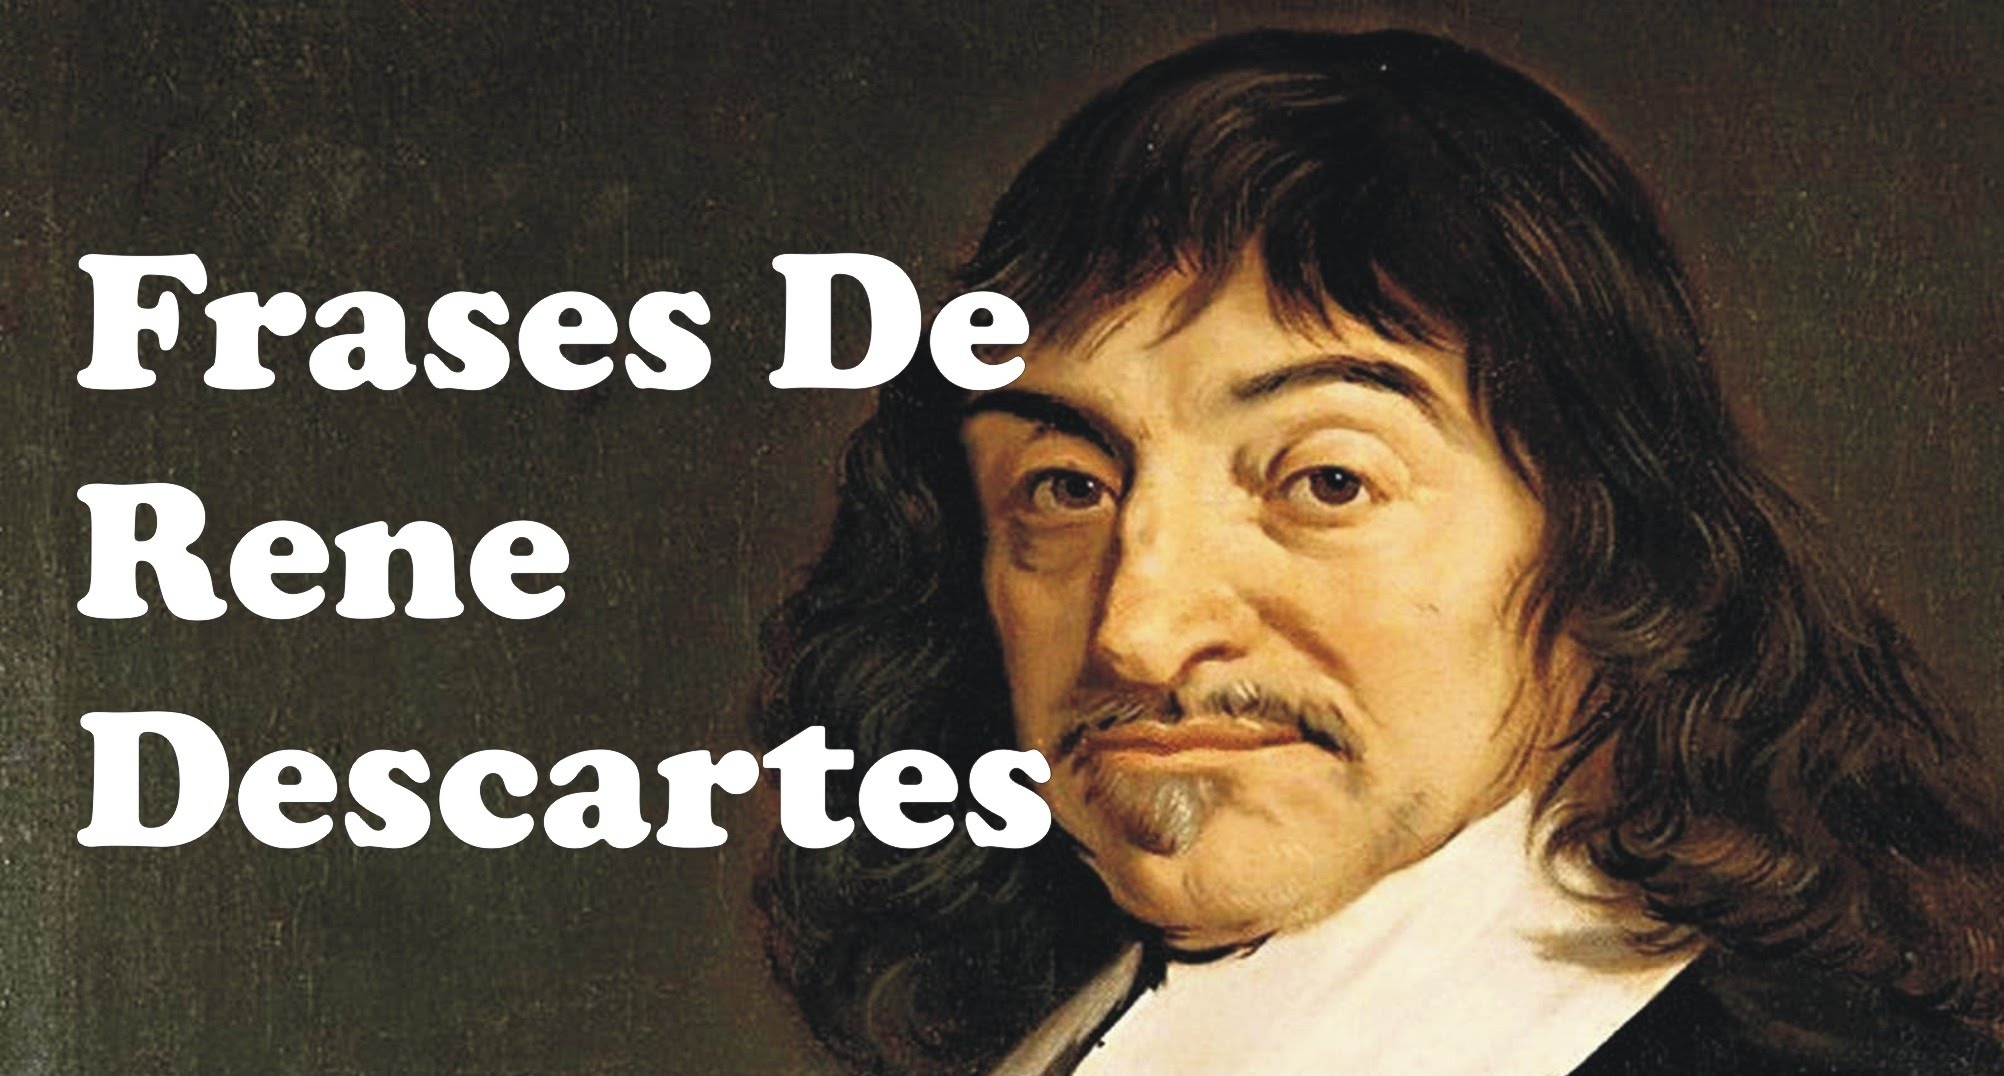 the life of rene descartes Top 9 quotes of rene descartes famous quotes, rare quotes and sayings rene descartes inspiring quotes, funny rene descartes quotes, rene descartes life quotes, rene descartes love quotes.